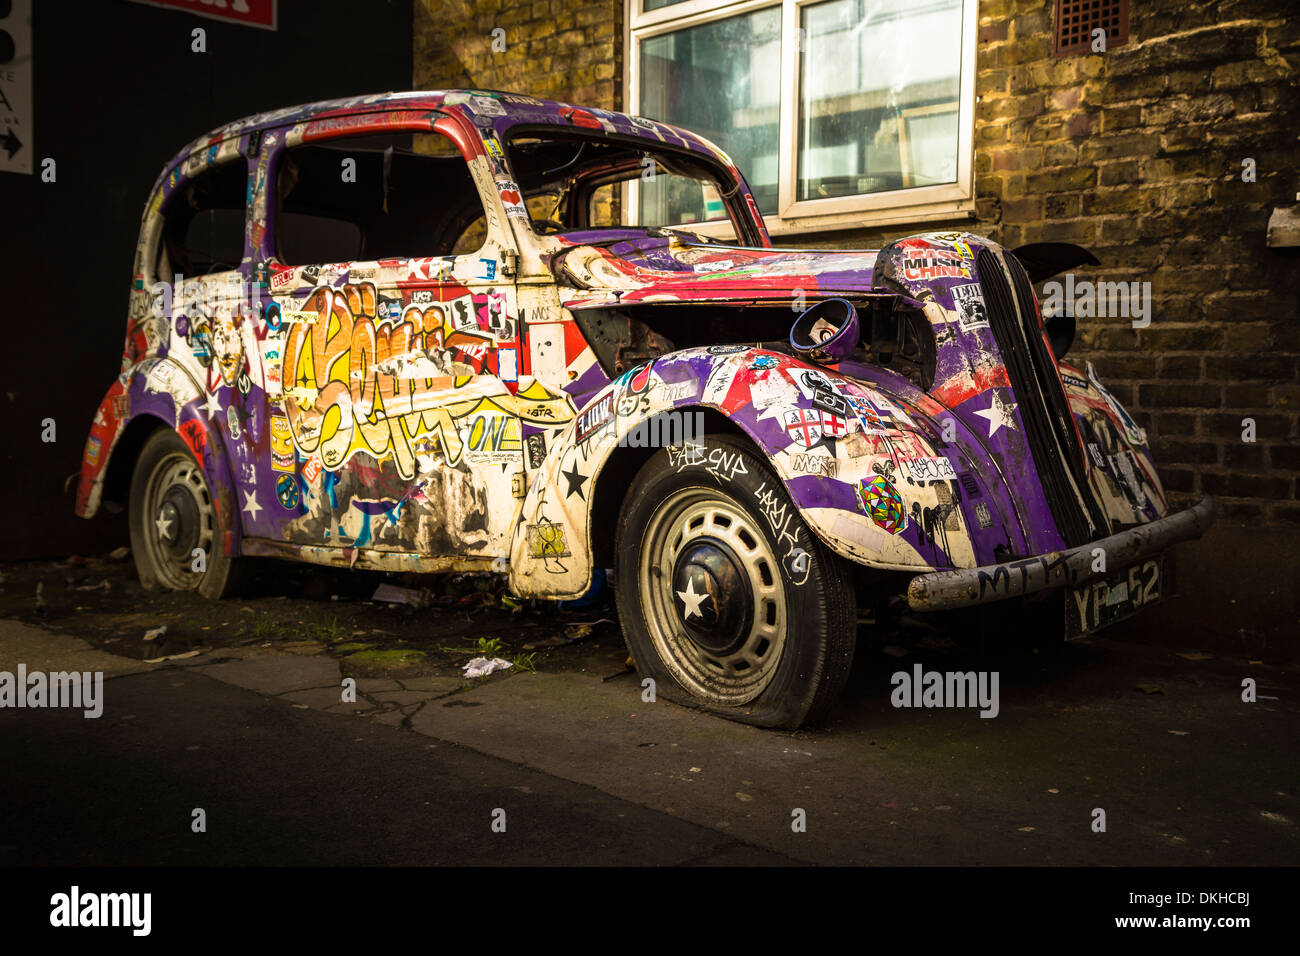 An old abandoned car, covered in graffiti, is a regular attraction for visitors to the Camden Lock Village Market in London. - Stock Image